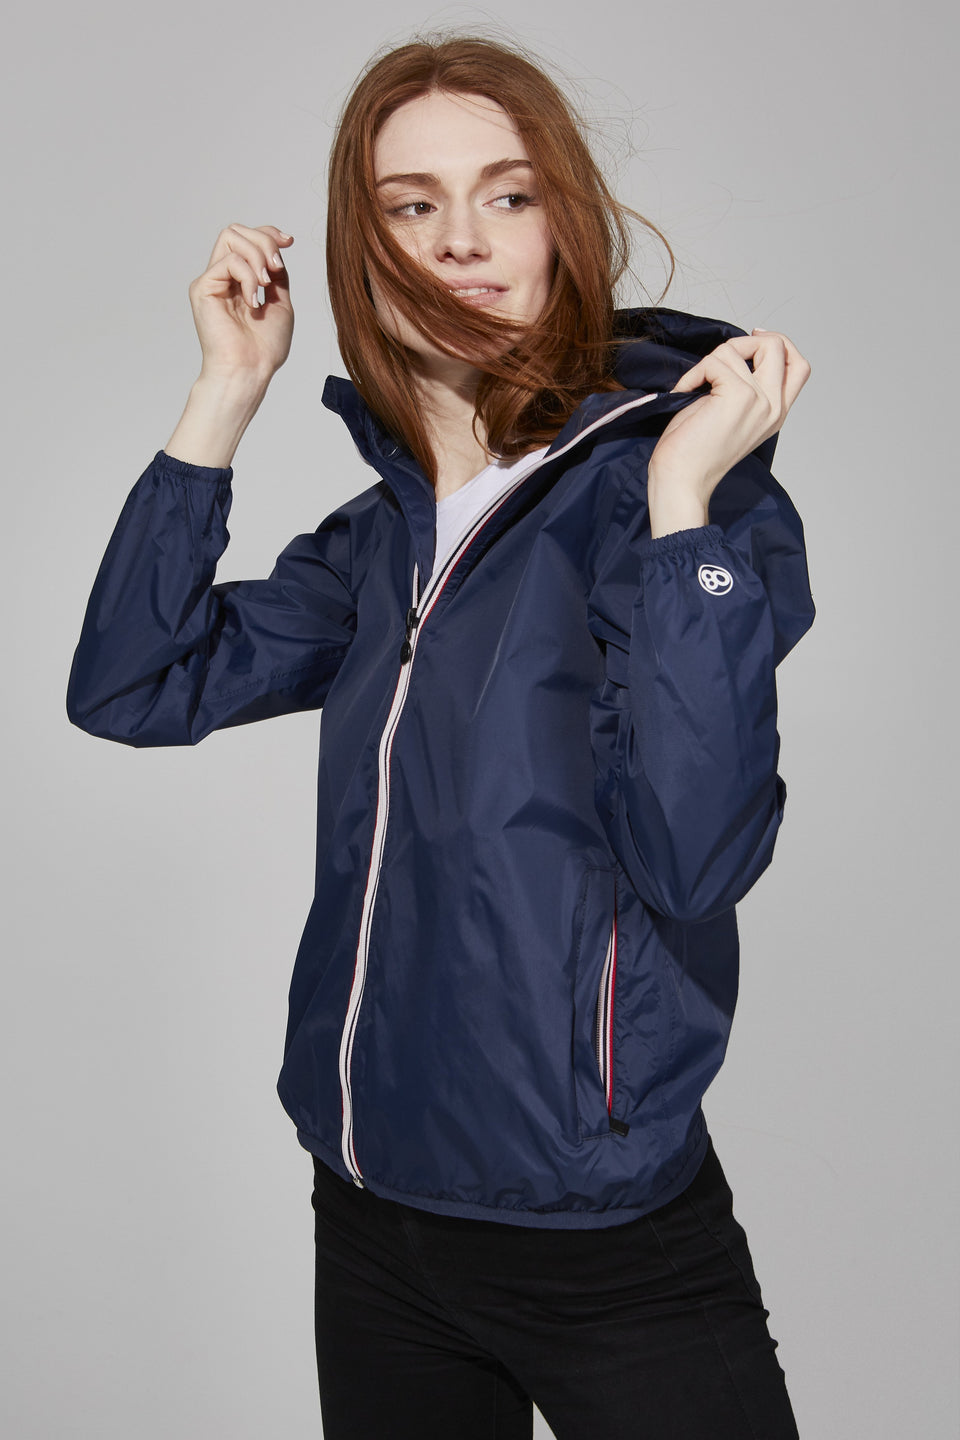 39e2e2d59 Sloane - Navy Full Zip Packable Rain Jacket